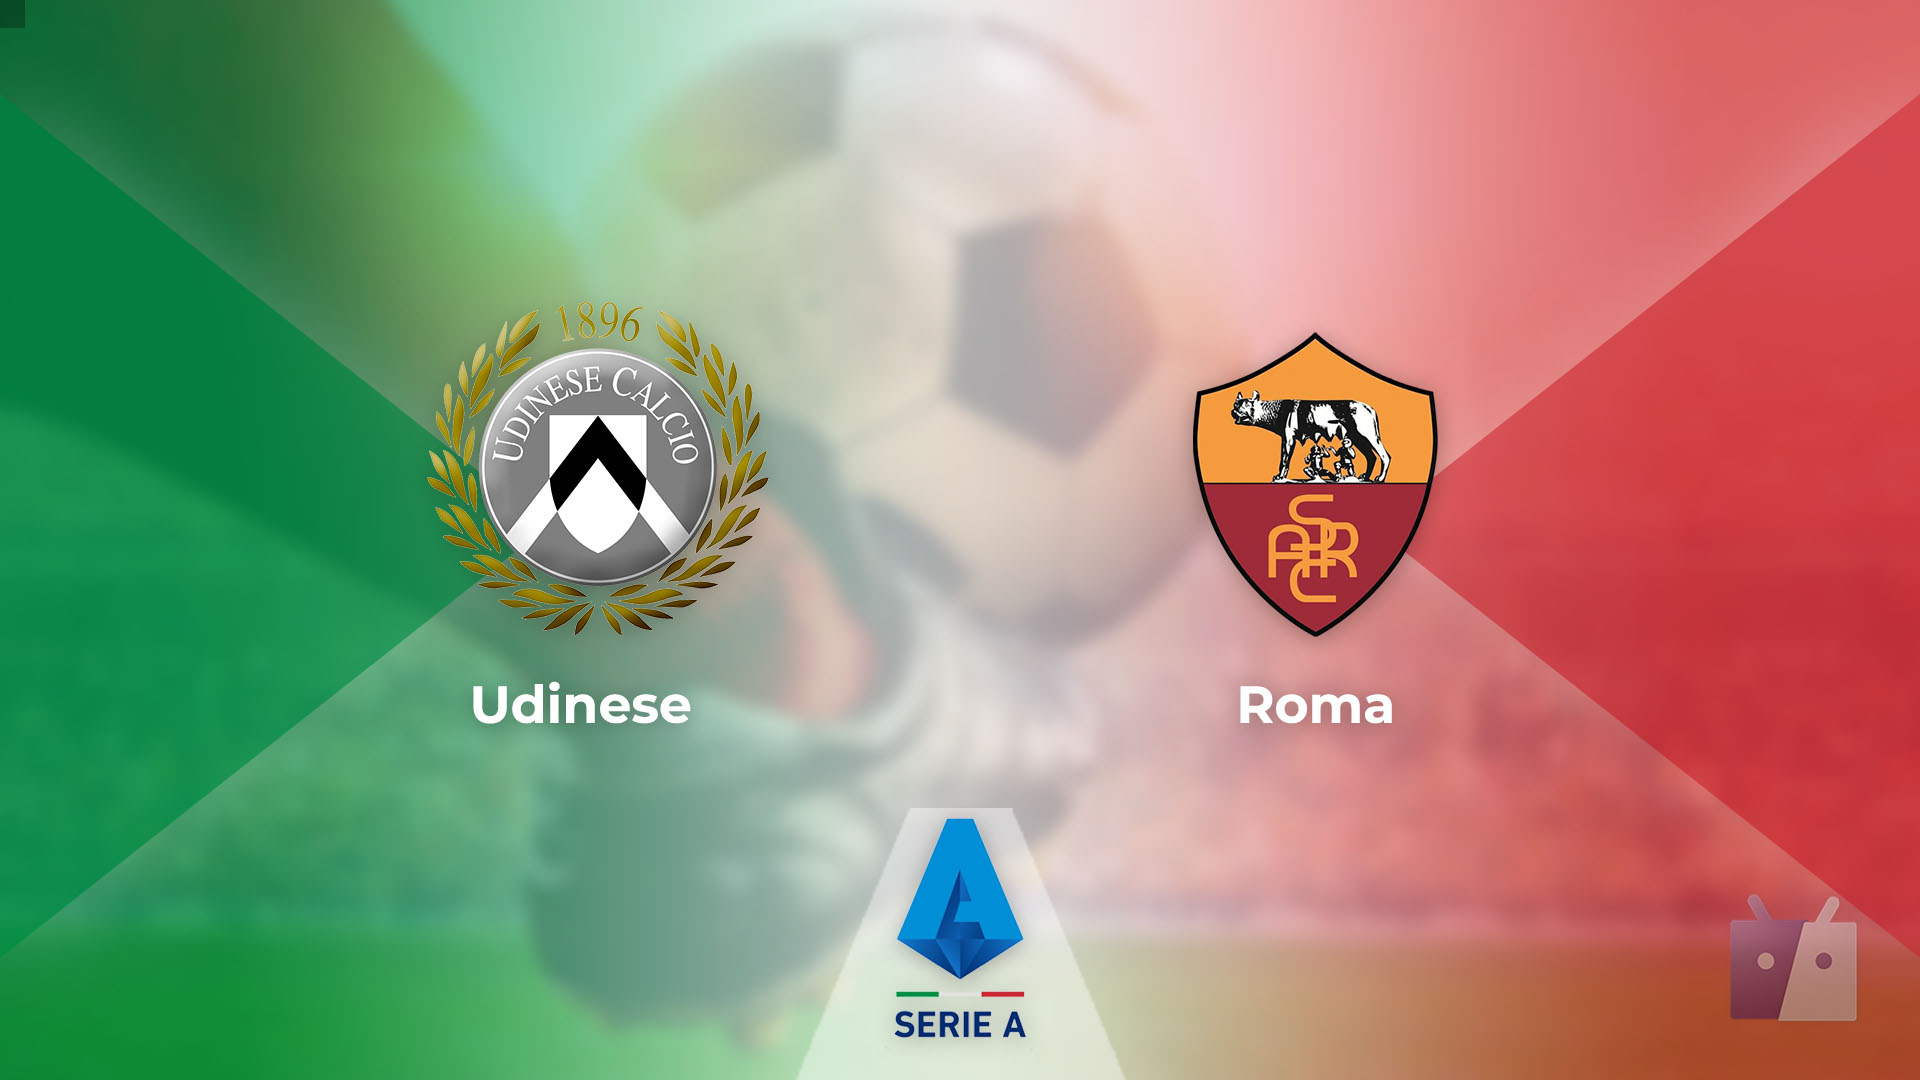 Dove vedere la partita tra Udinese e Roma in TV e streaming